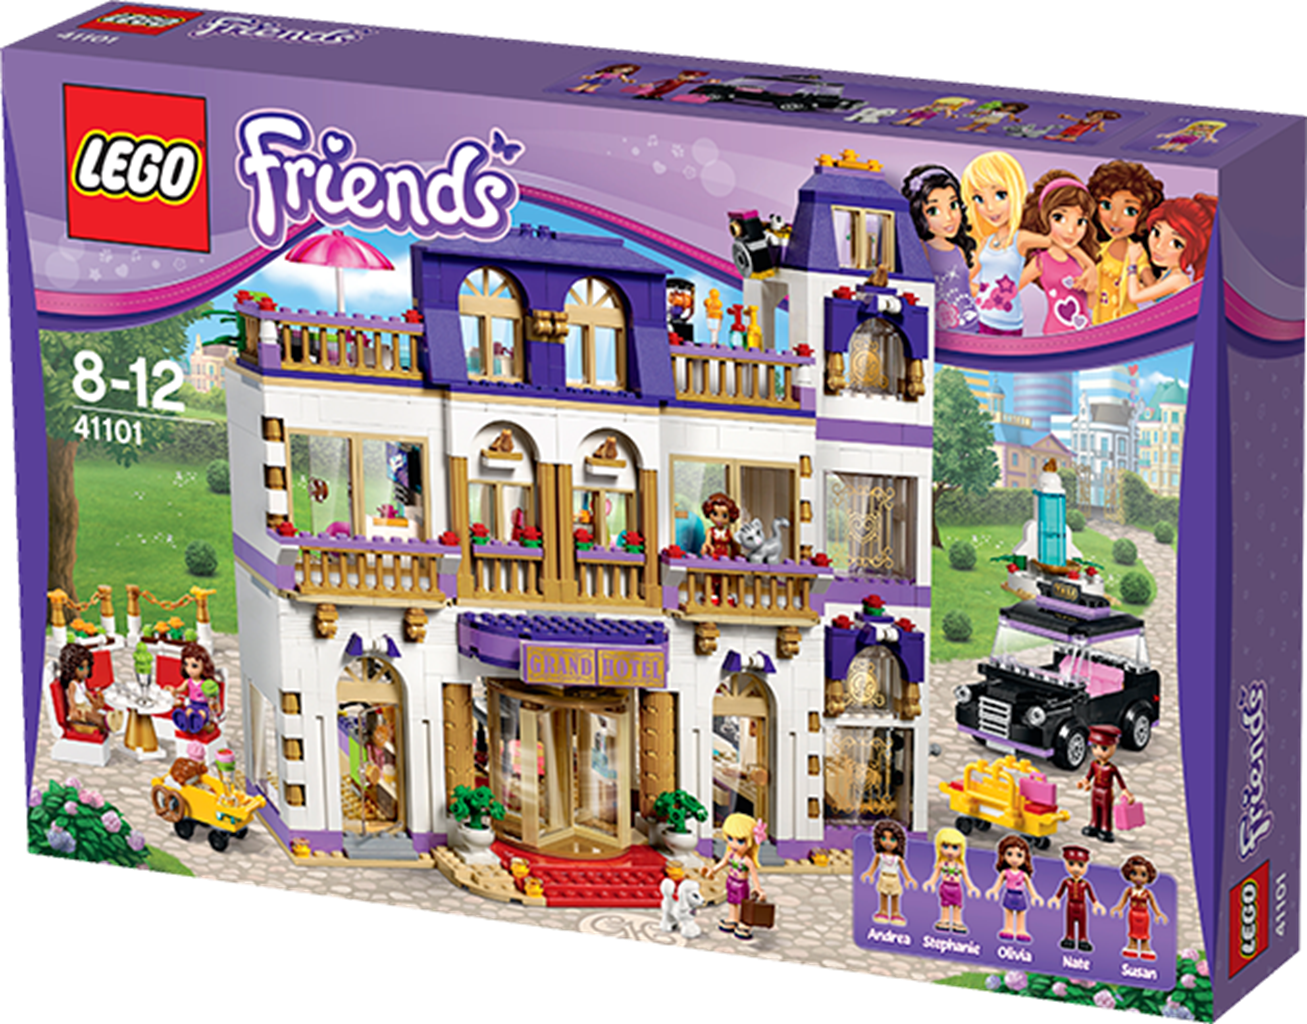 Lego Friends 41101 Heartlake Grand Hotel Legetøj Fra Br Lego Friends Lego Lego Friends Sets